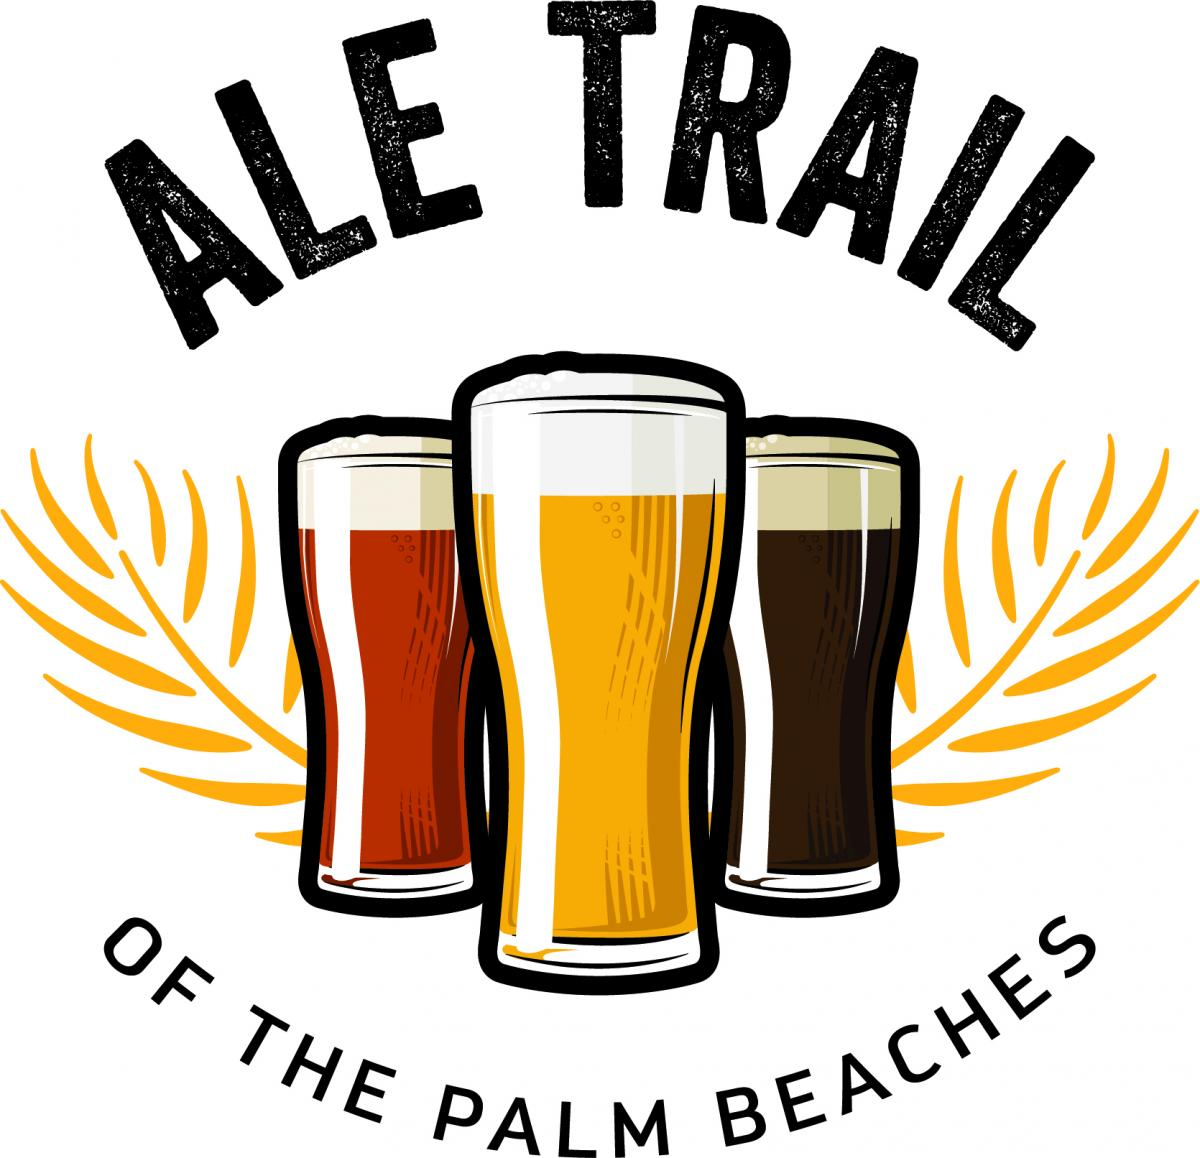 Weg des The Palm Beaches Logos